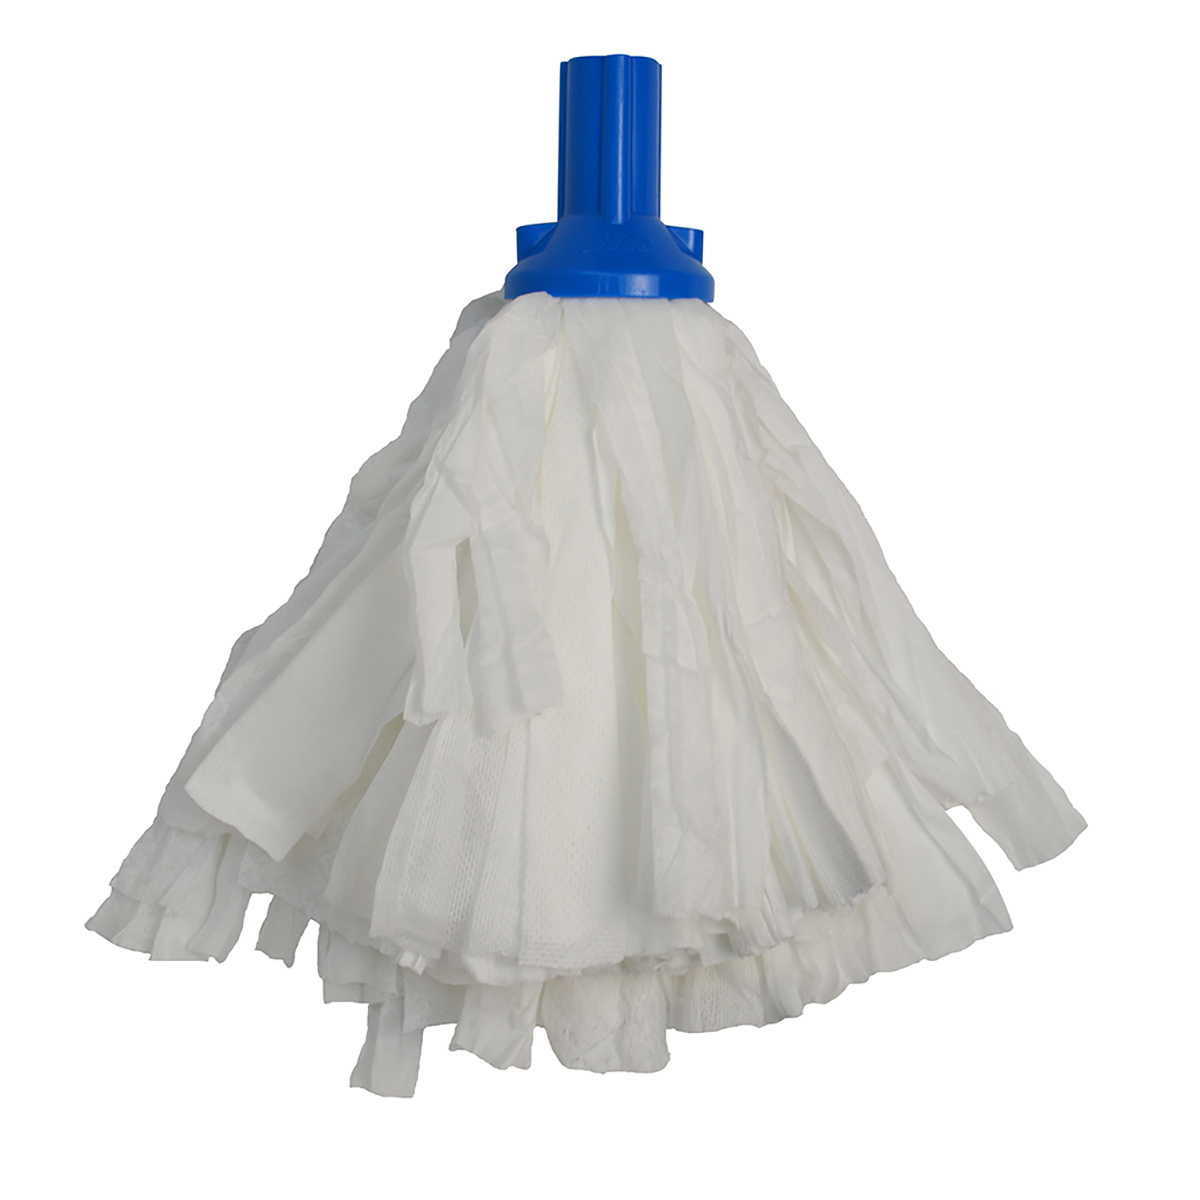 Disposable Bucket Mop Head - Blue